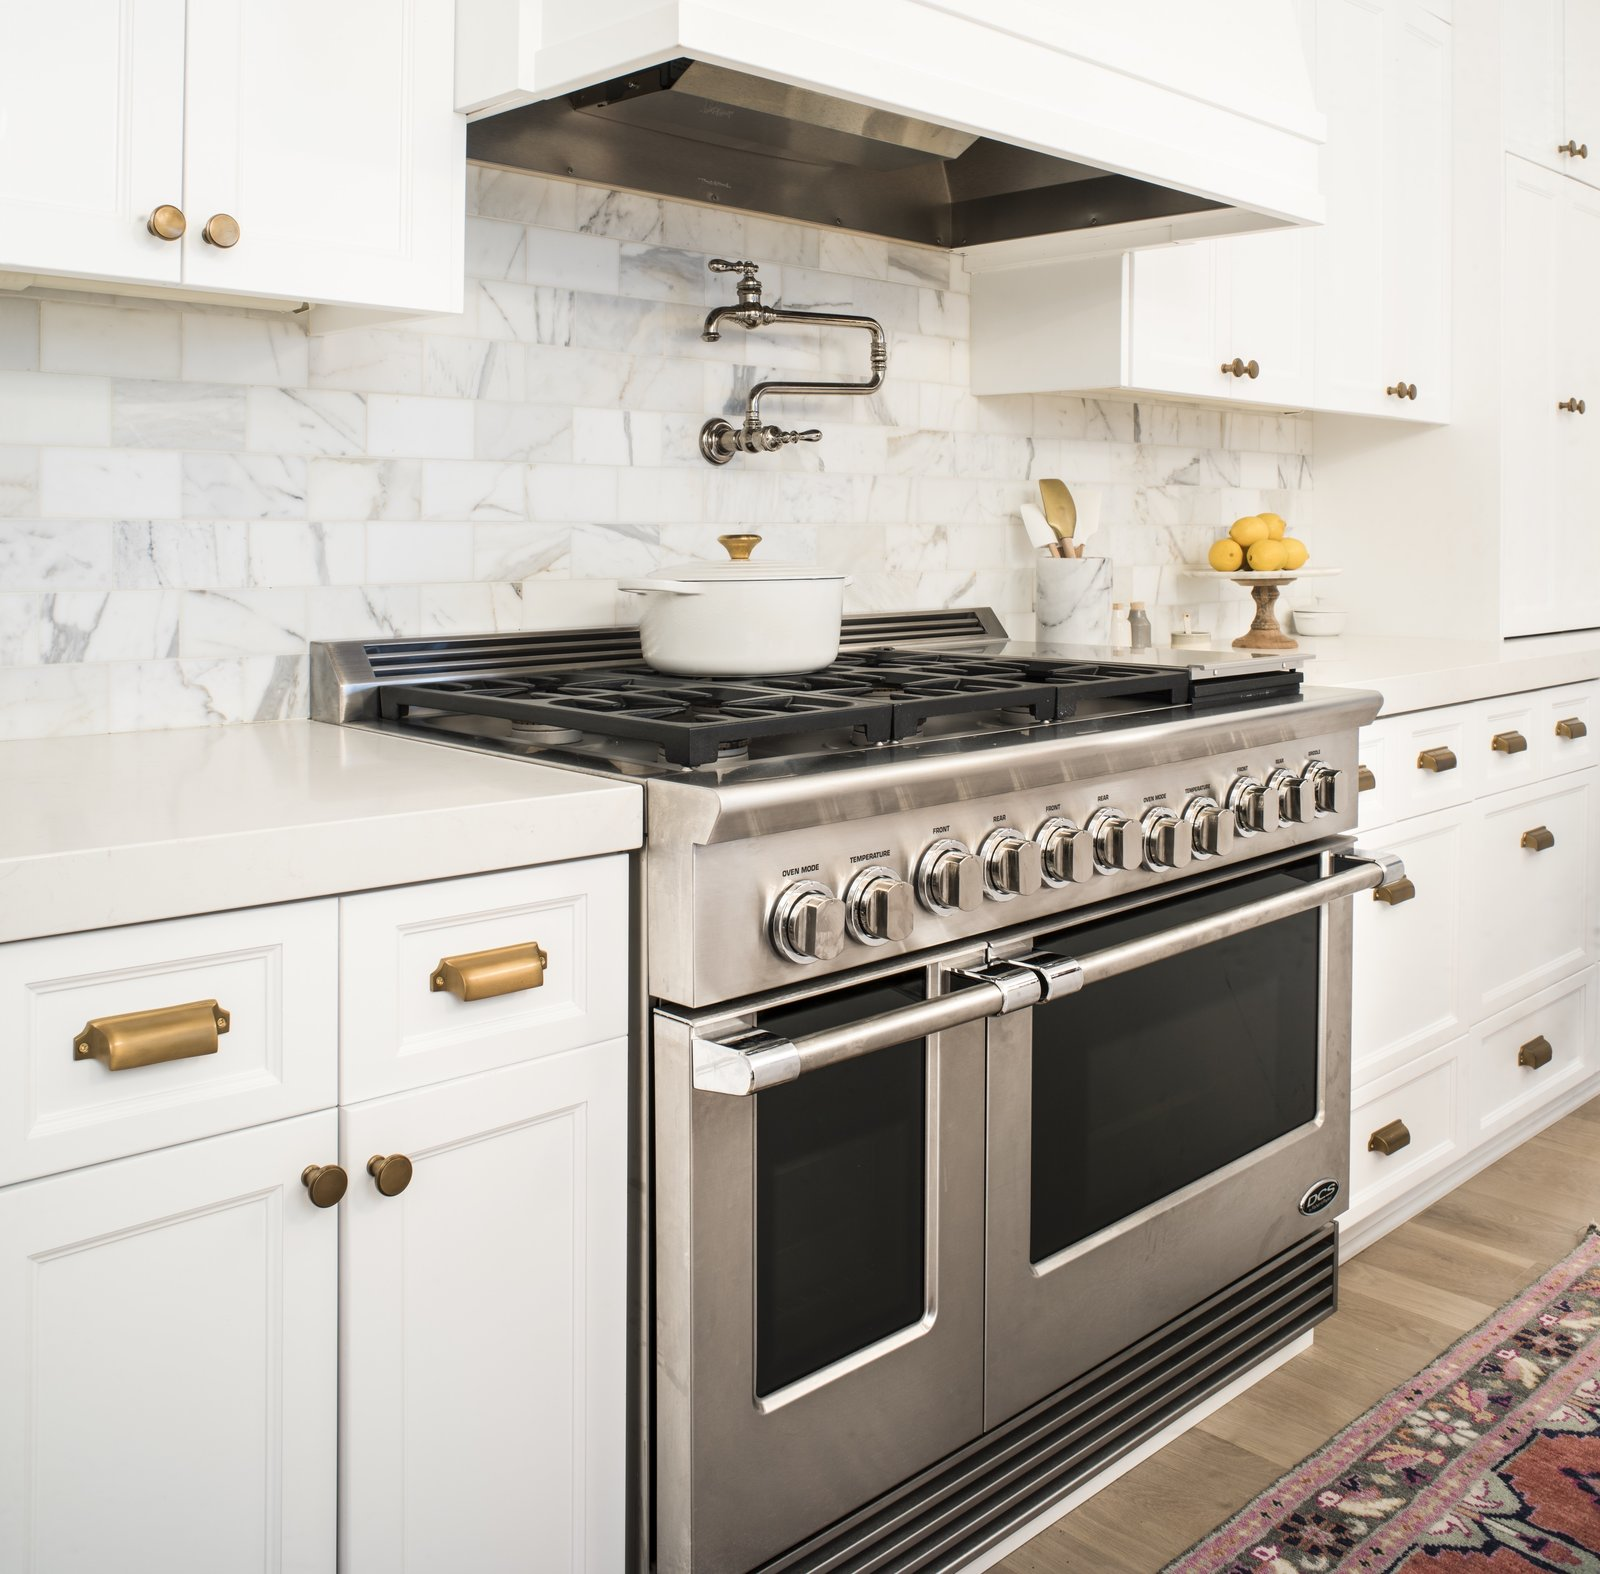 Dual Flow Burners deliver rapid, even heating that can reach up to 23,000 BTU, and the cooktop offers a total of up to 134,000 BTU.  The dials offer precise control with LED halos that turn white, orange, and red to indicate heating up, preheated, and self-cleaning modes, respectively.  Photo 3 of 8 in An Interior Designer's Streamlined Kitchen